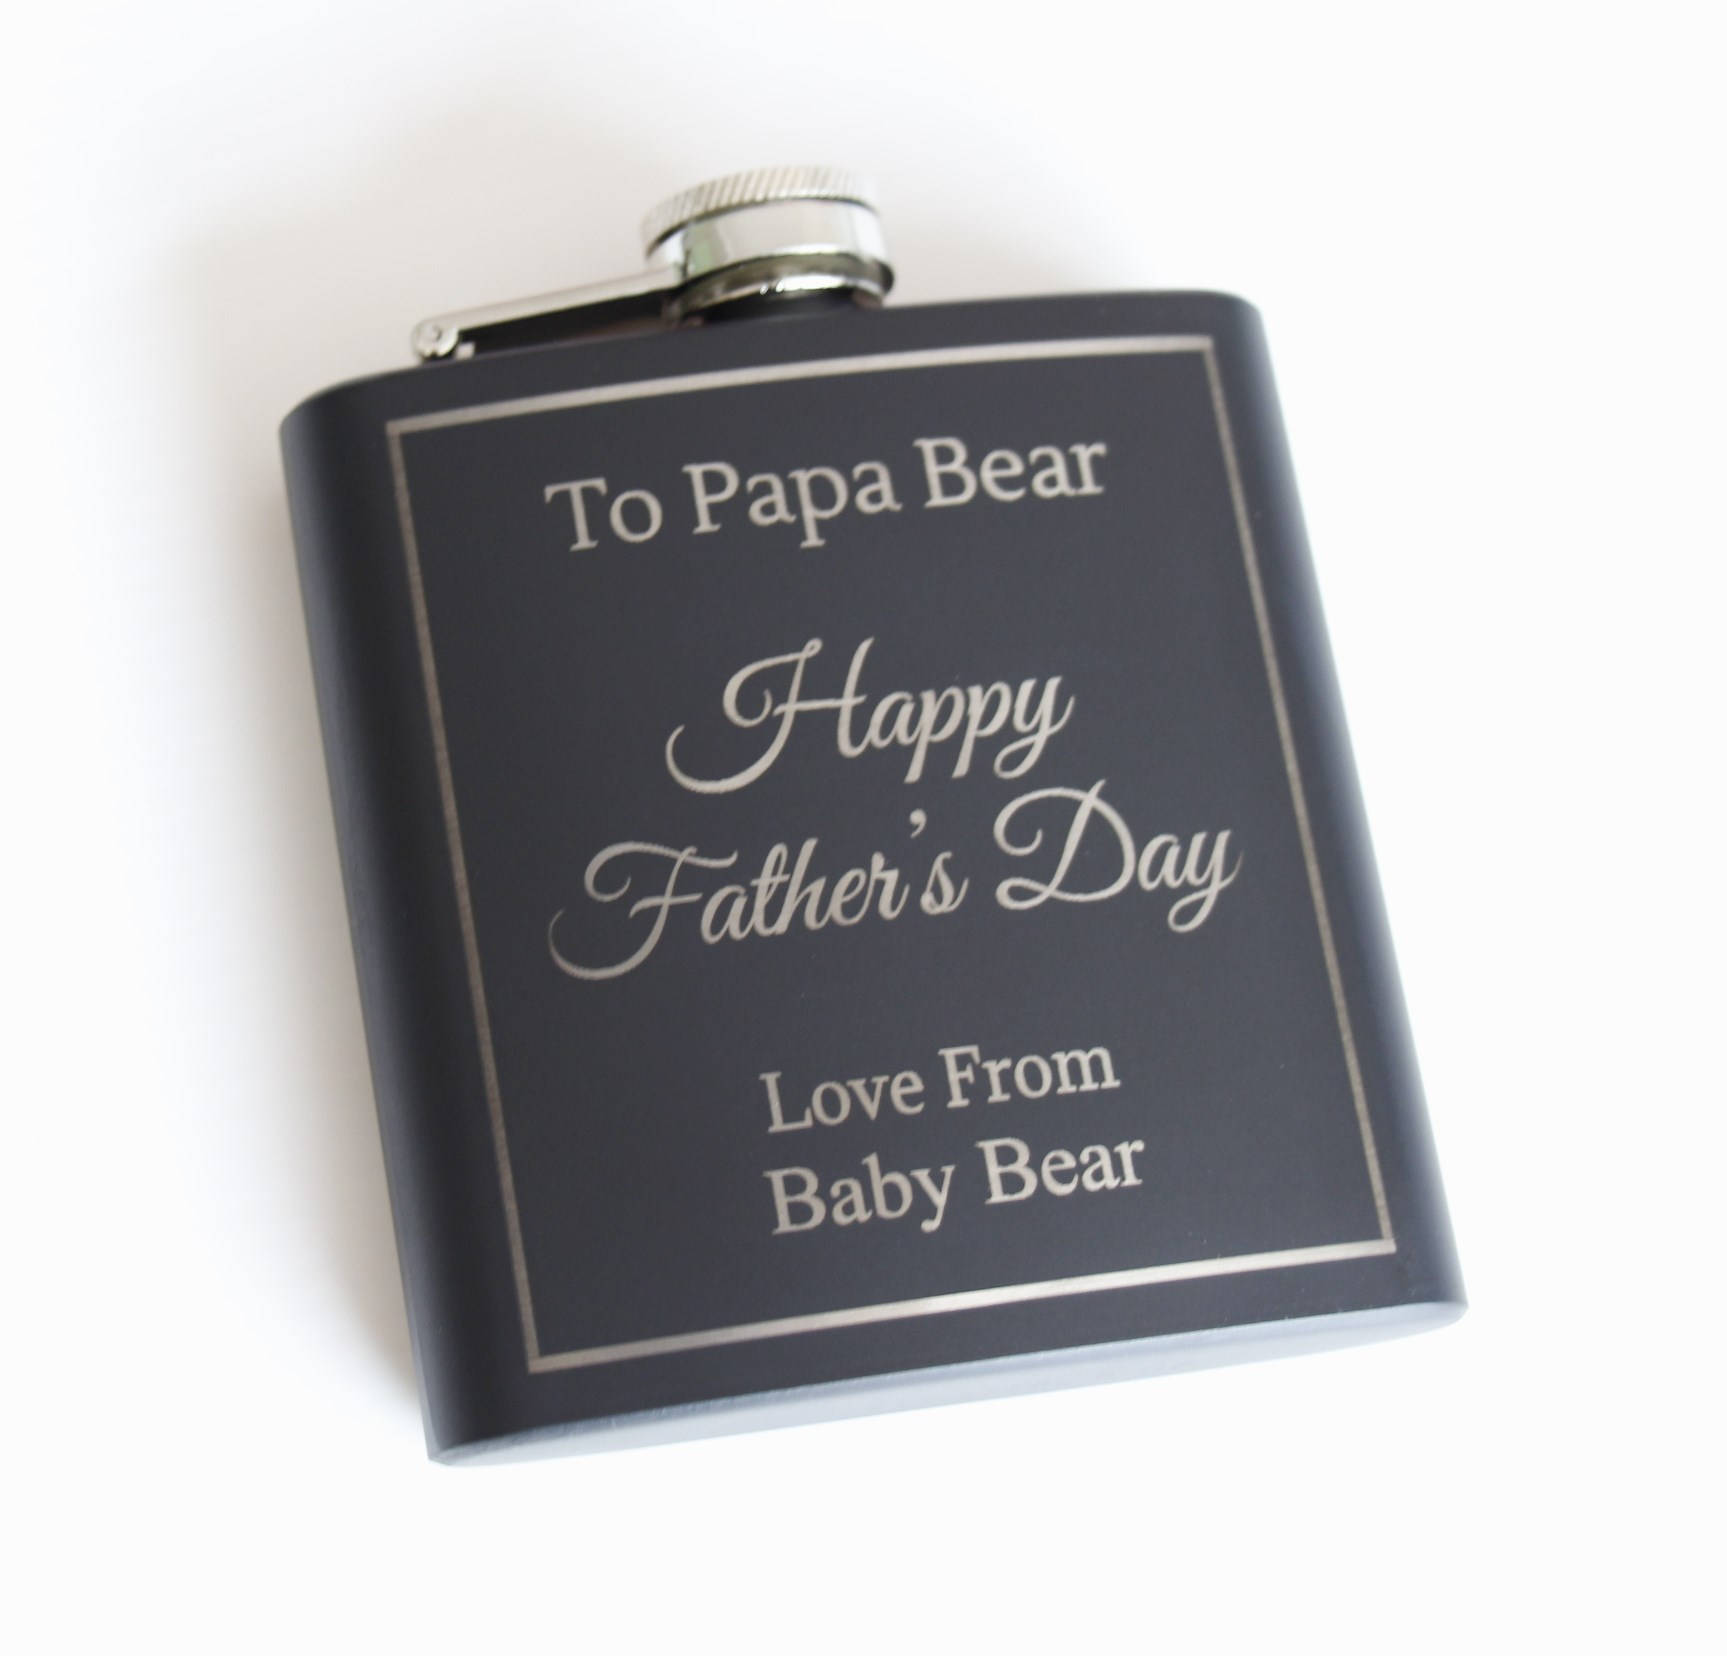 Father's Day Personalised engraved Hip Flask, Black stainless steel hip flask